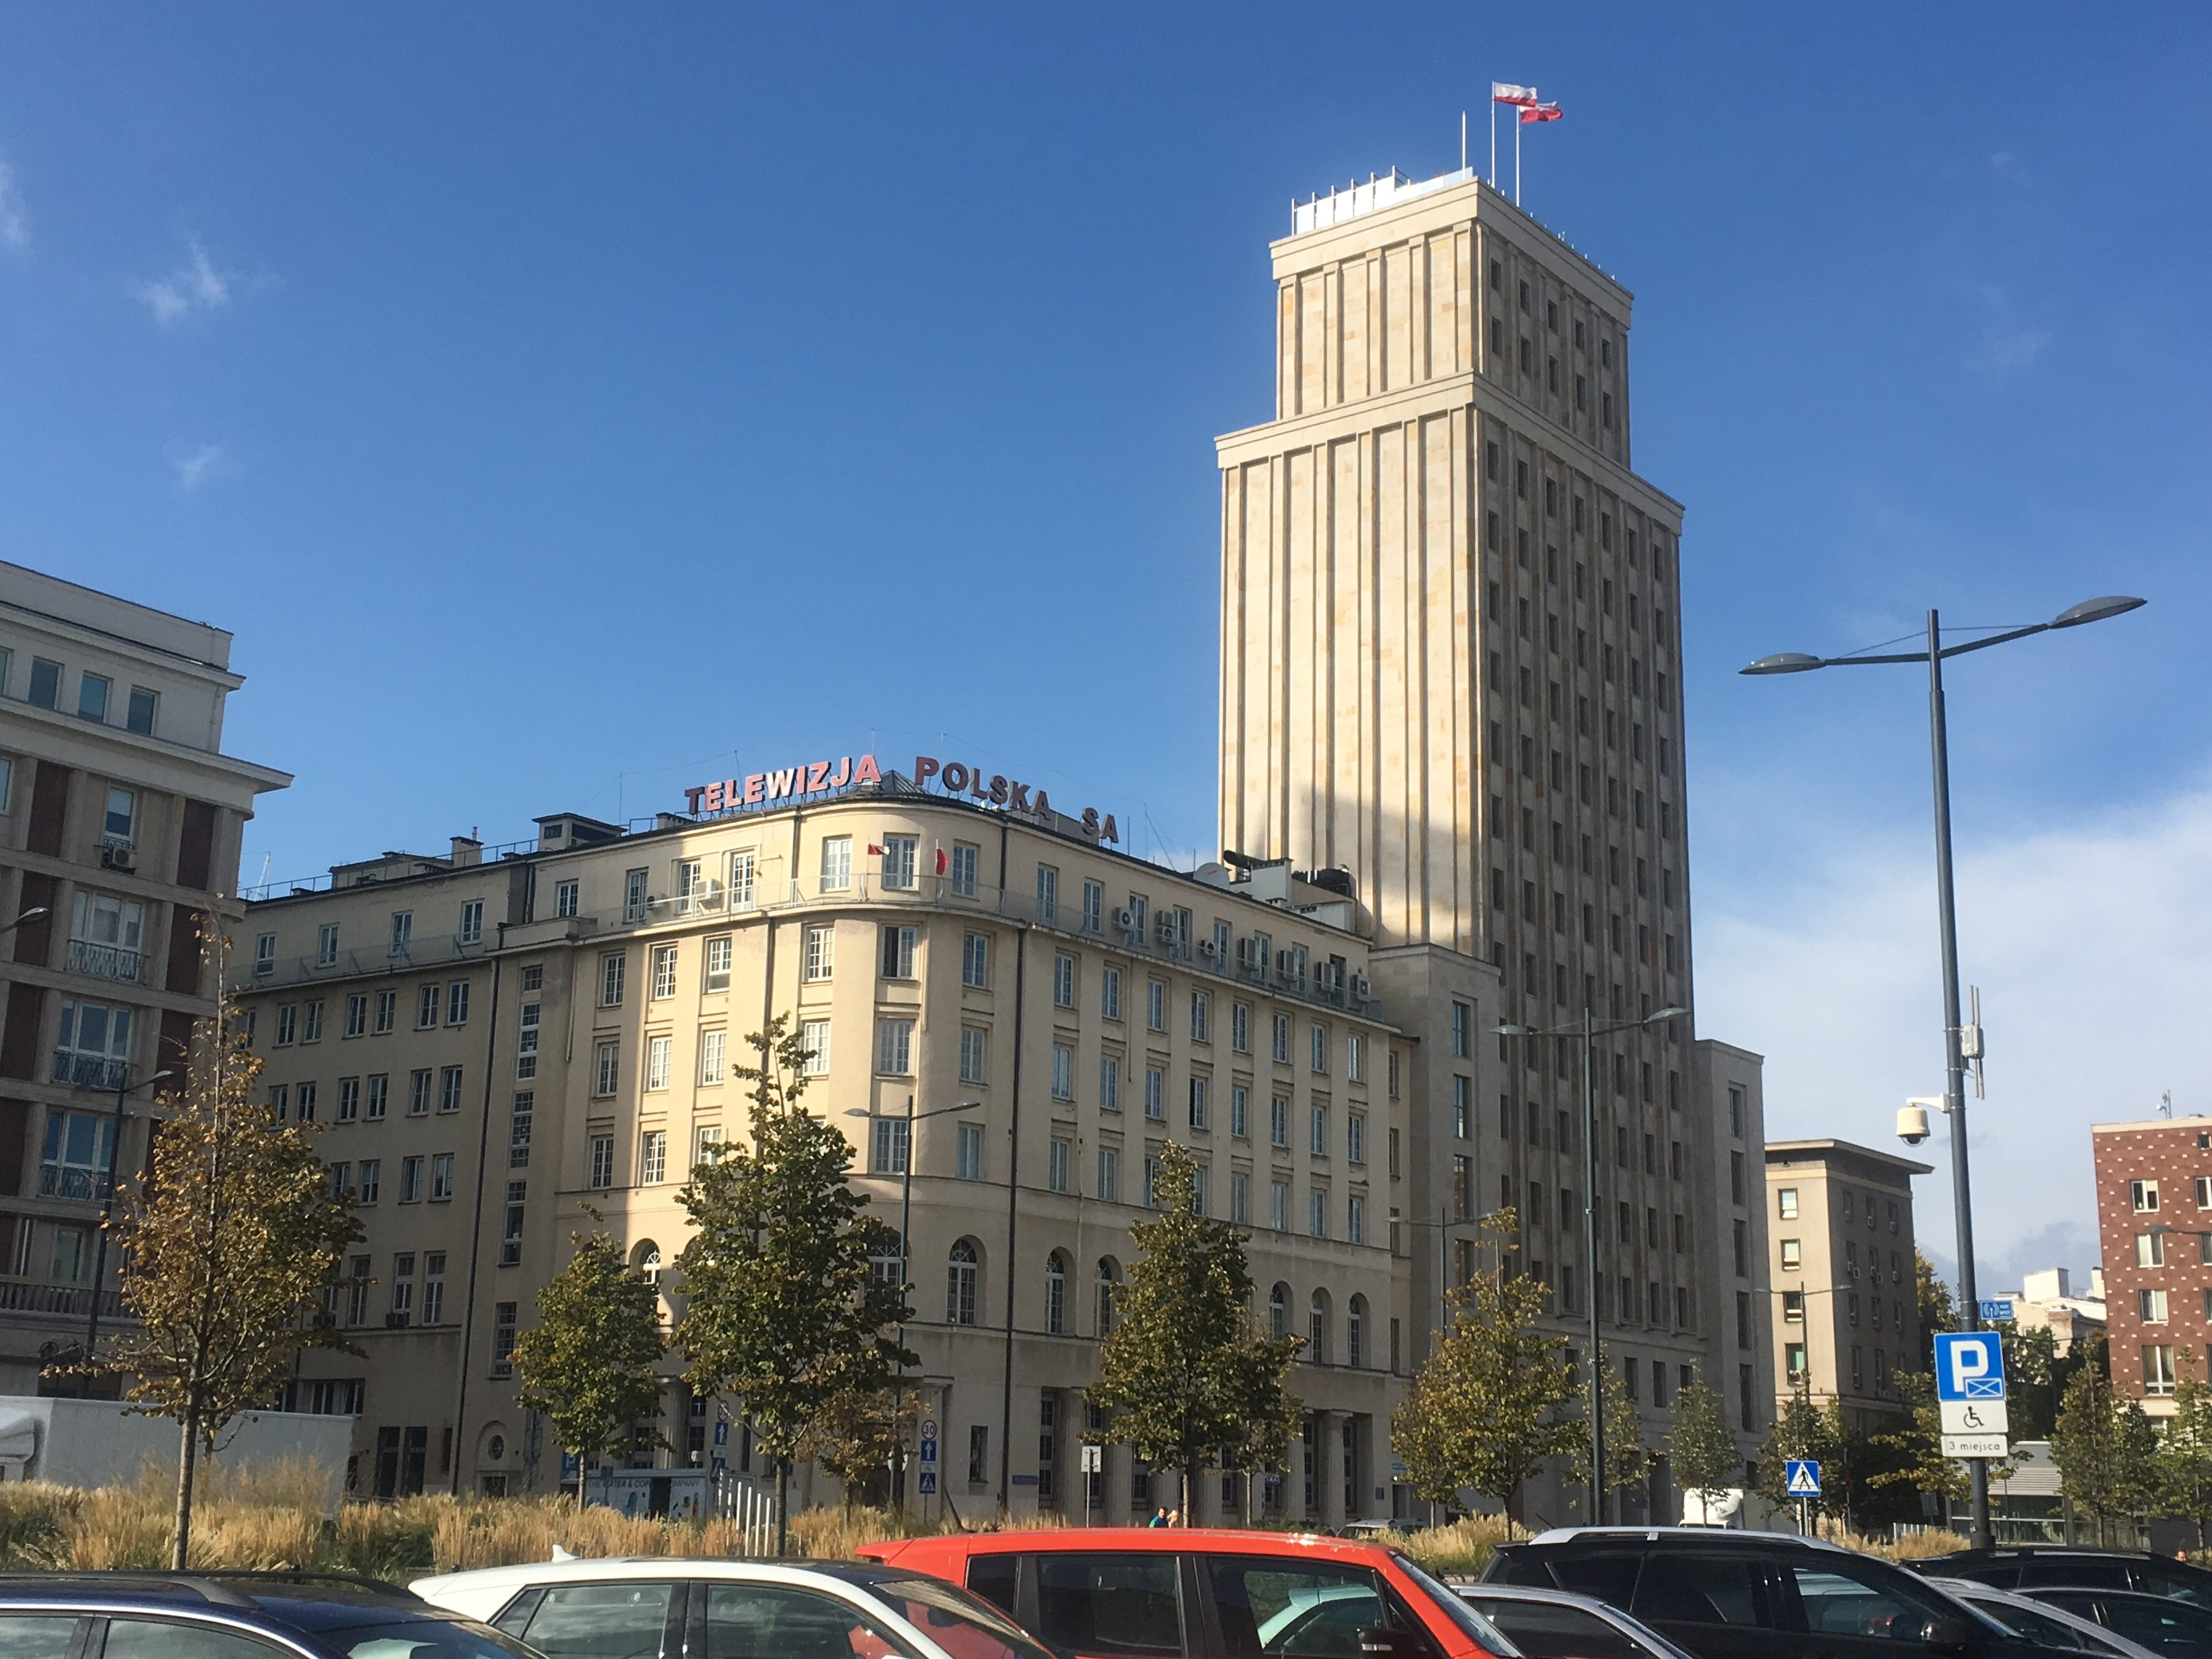 The old Prudential building was blown up by the Nazis